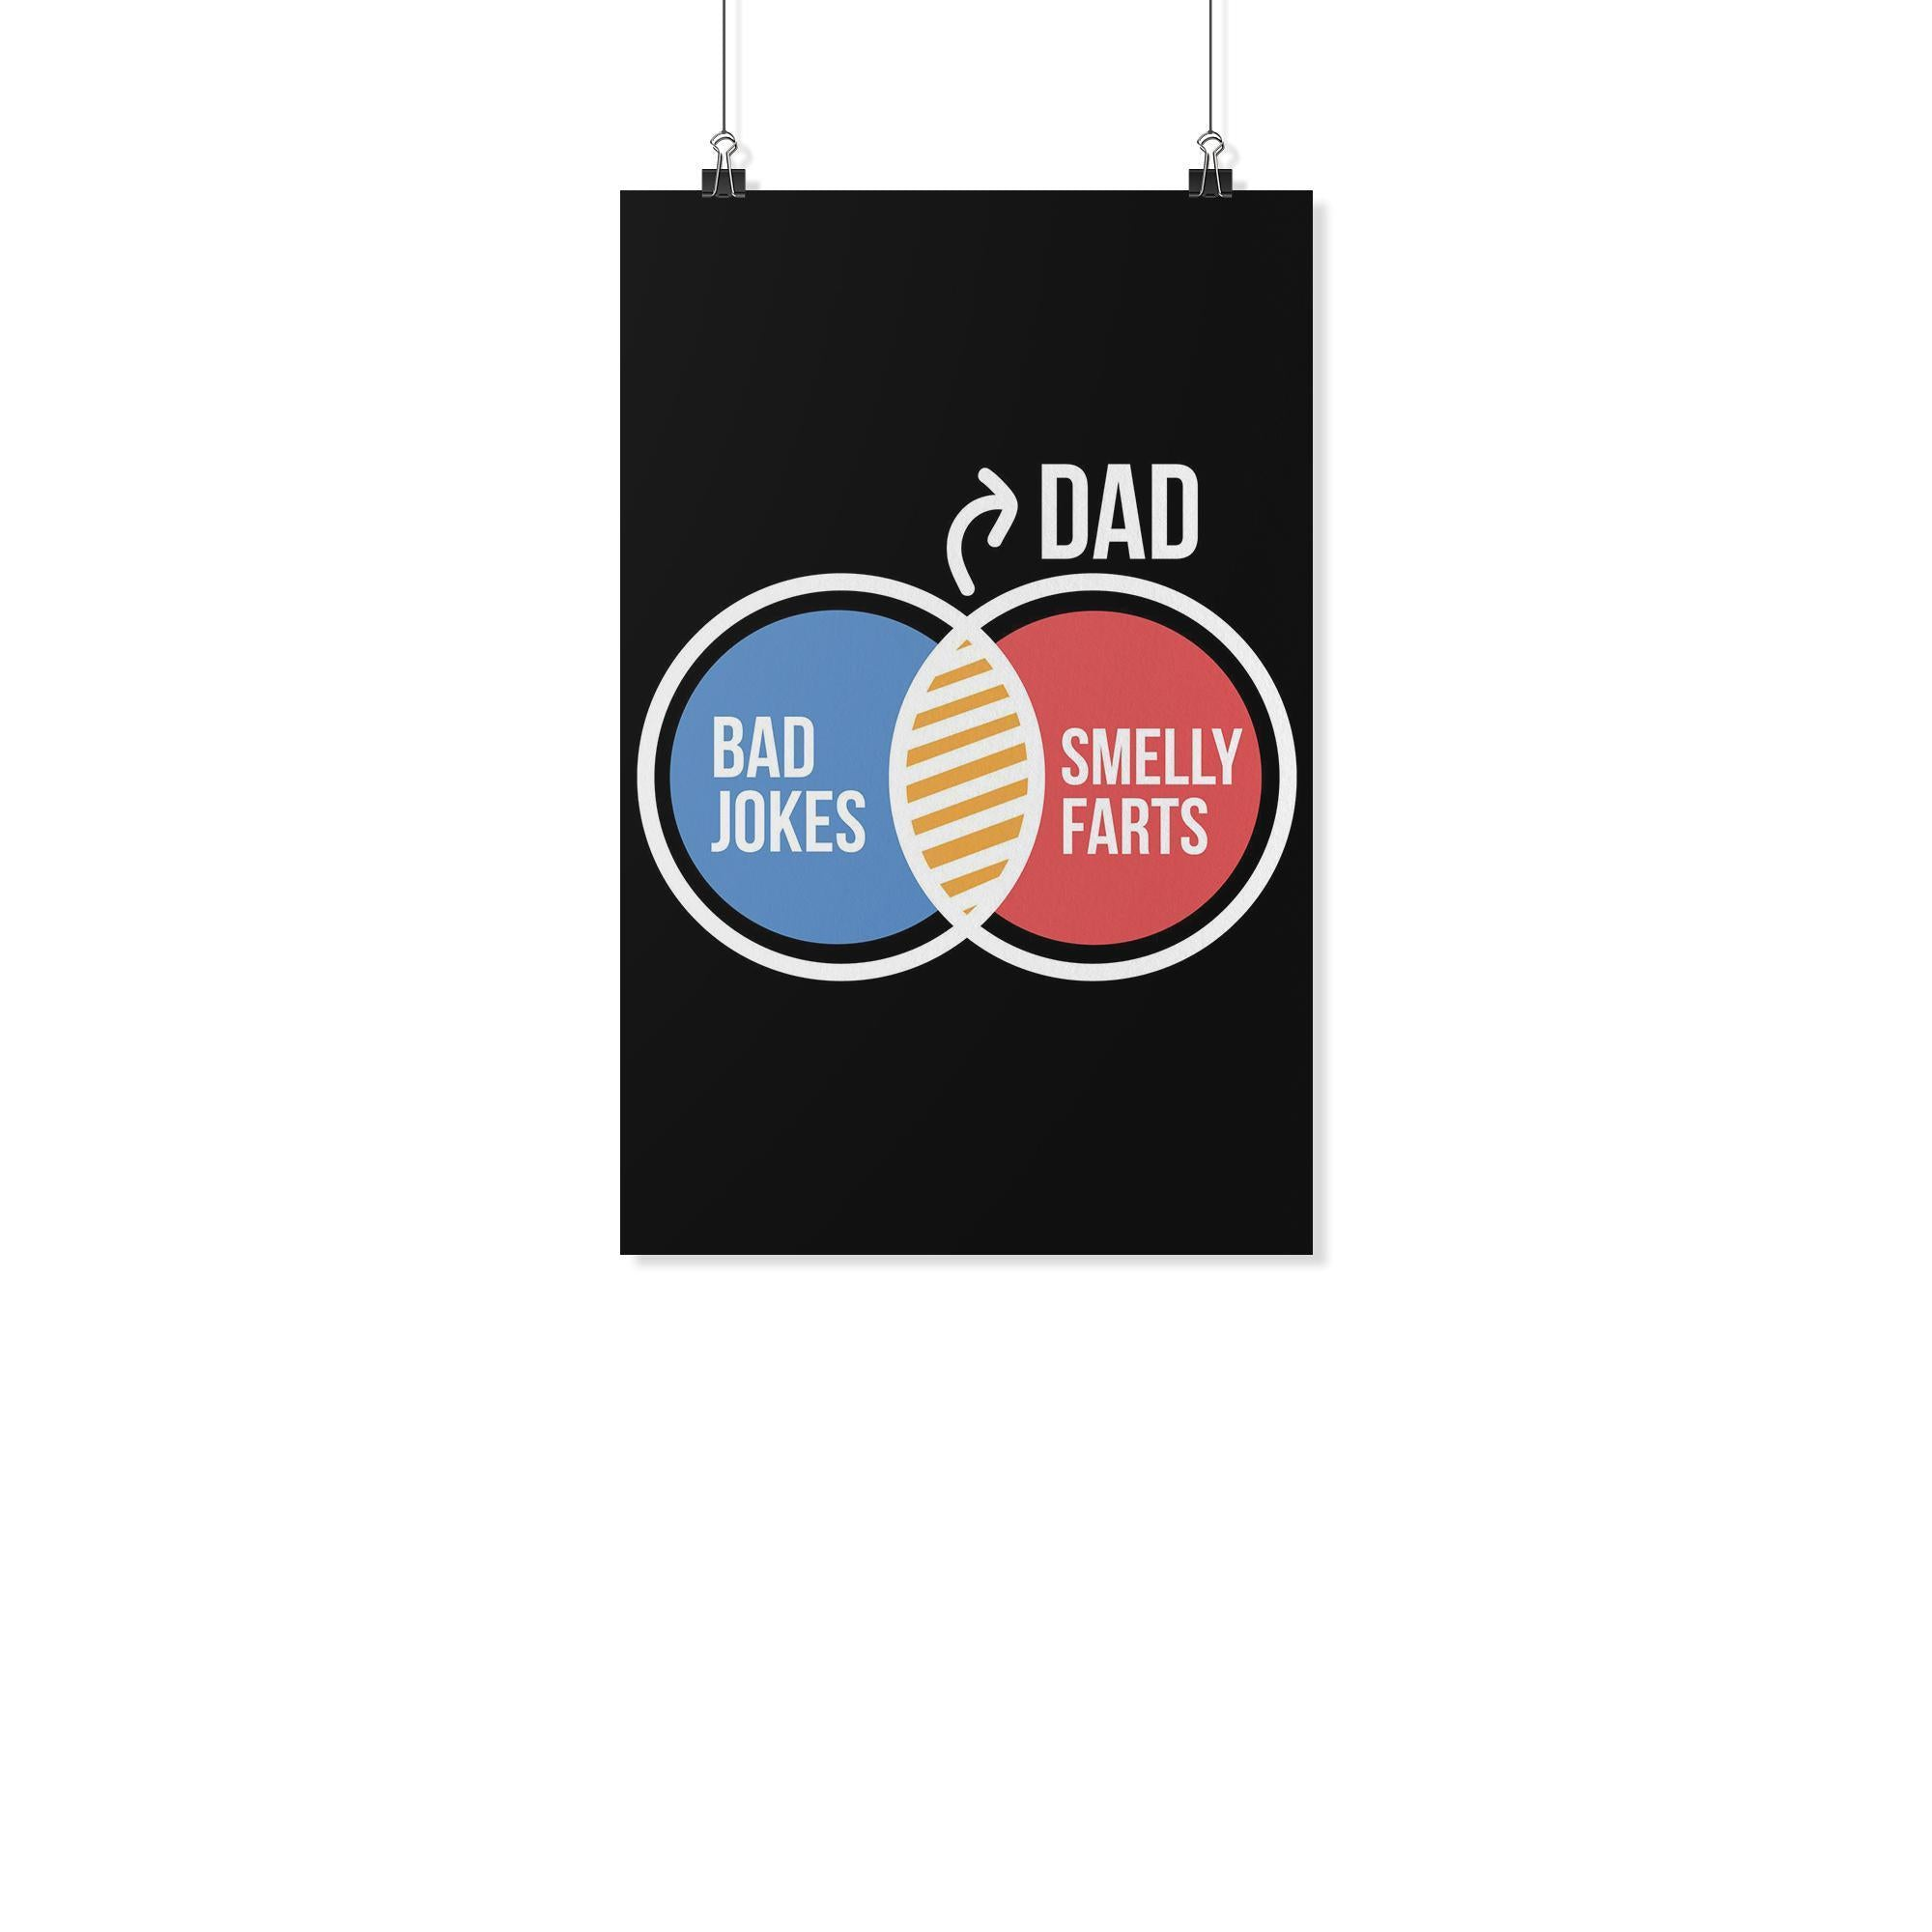 Dad Bad Jokes Smelly Farts Funny Gifts For Men Poster Wall Art Decor G